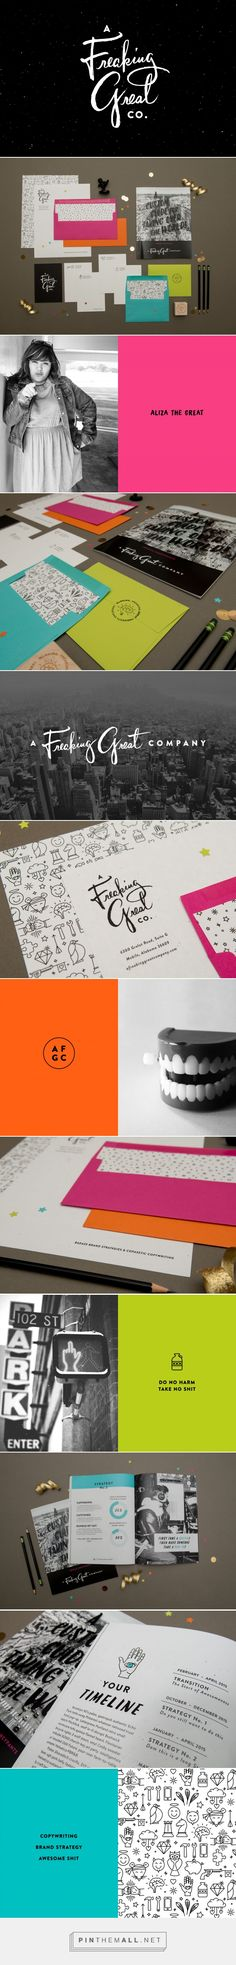 A Freaking Great Company Brand by Braizen | Fivestar Branding – Design and Branding Agency & Inspiration Gallery